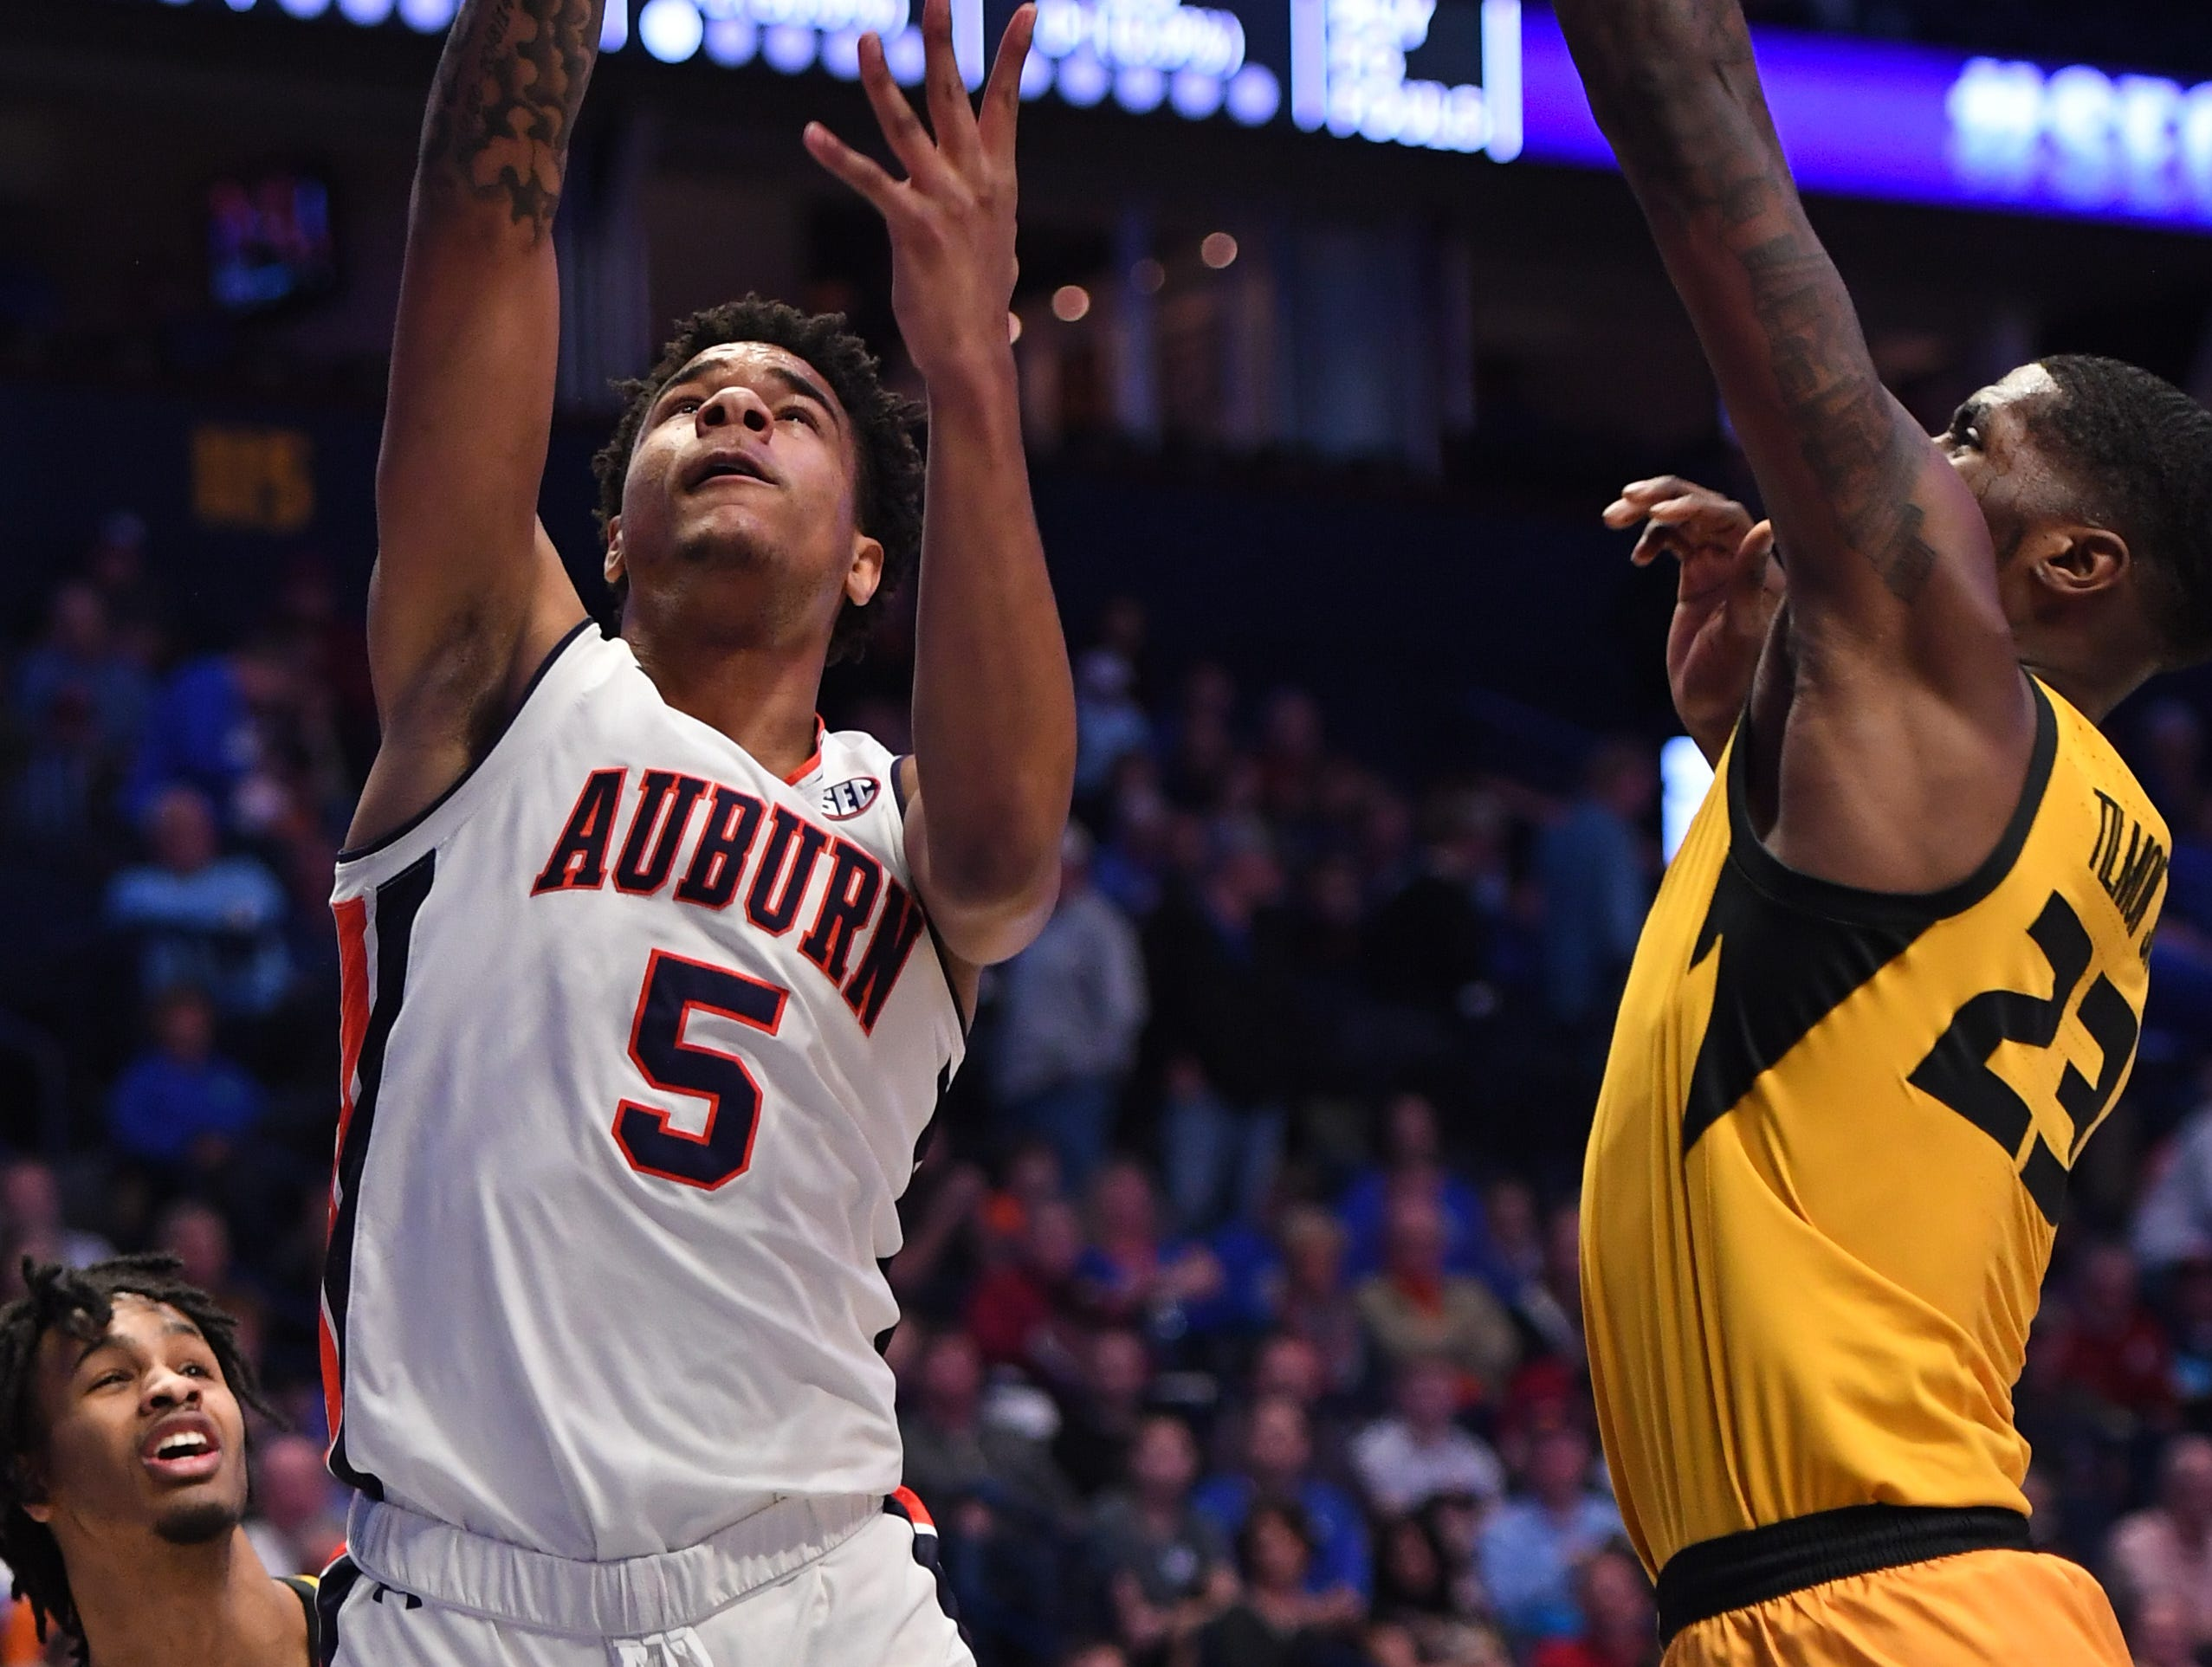 Mar 14, 2019; Nashville, TN, USA; Auburn Tigers forward Chuma Okeke (5) attempts a shot against Missouri Tigers forward Jeremiah Tilmon (23) during the first half of the SEC conference tournament at Bridgestone Arena. Mandatory Credit: Christopher Hanewinckel-USA TODAY Sports